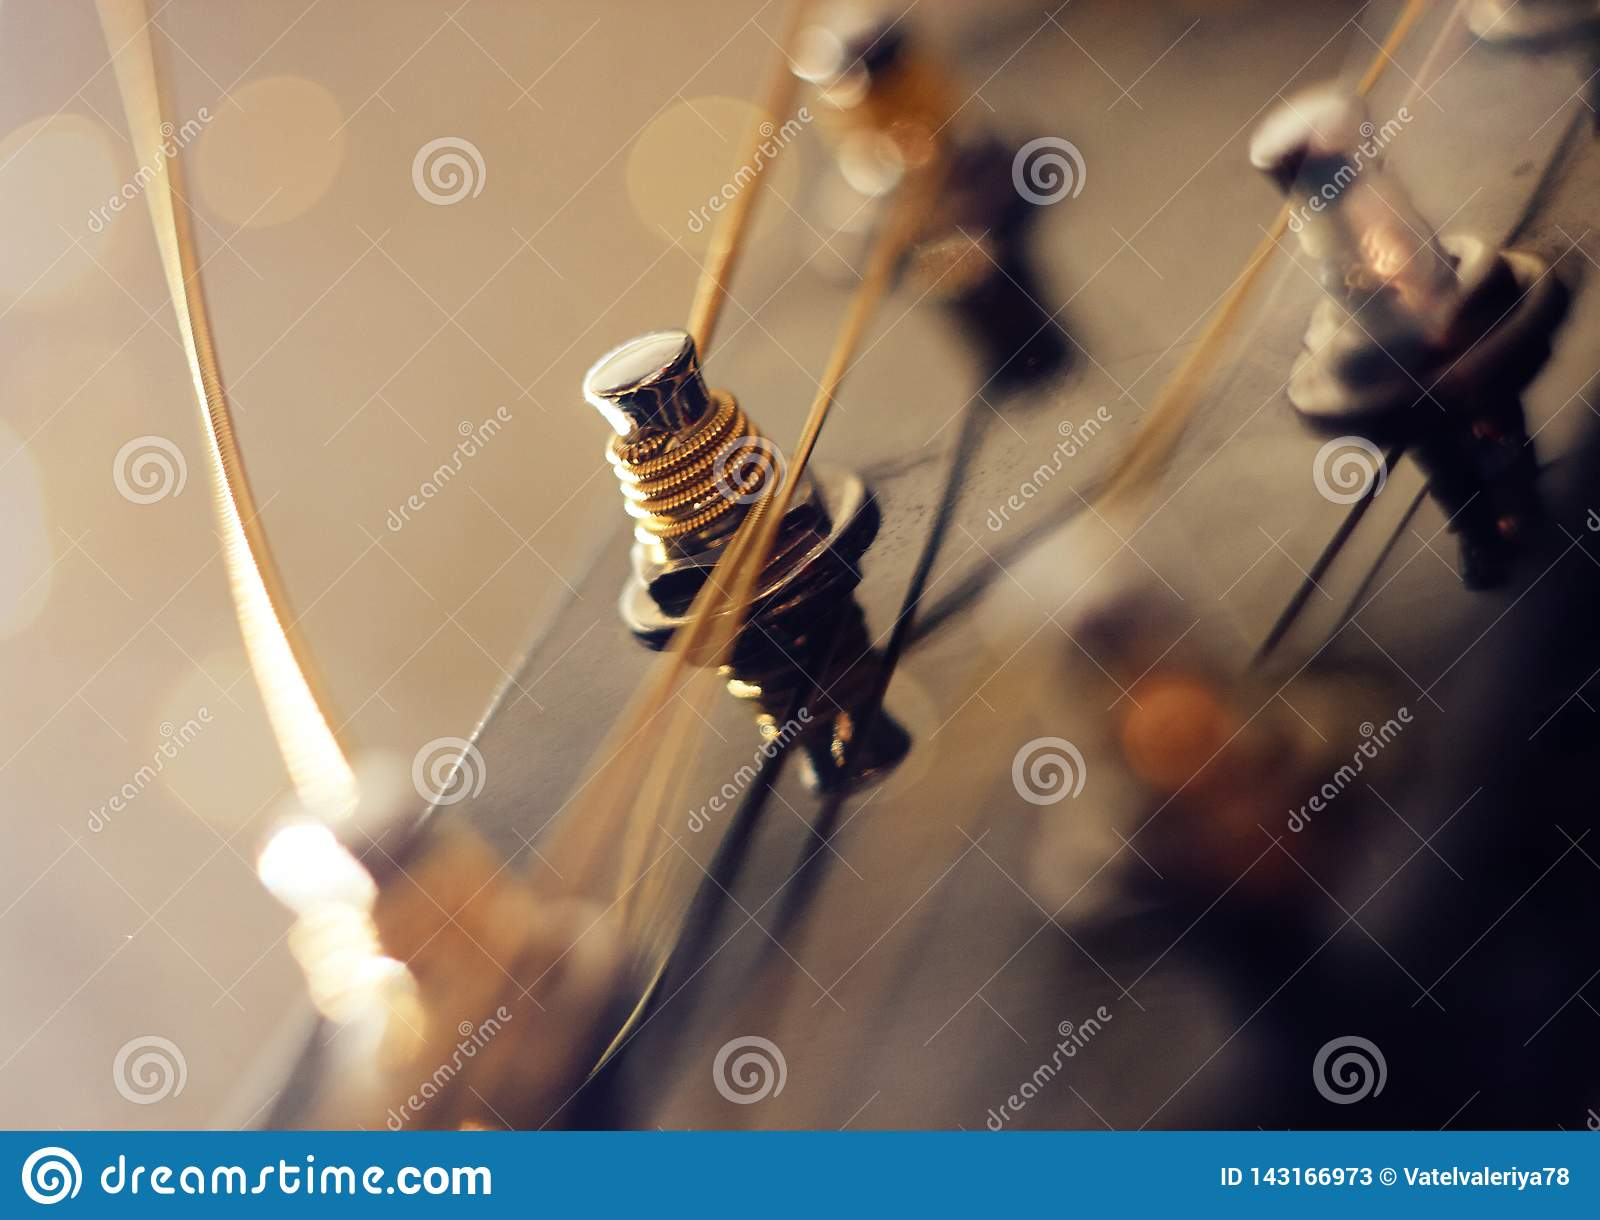 Strings strung on the neck of a guitar